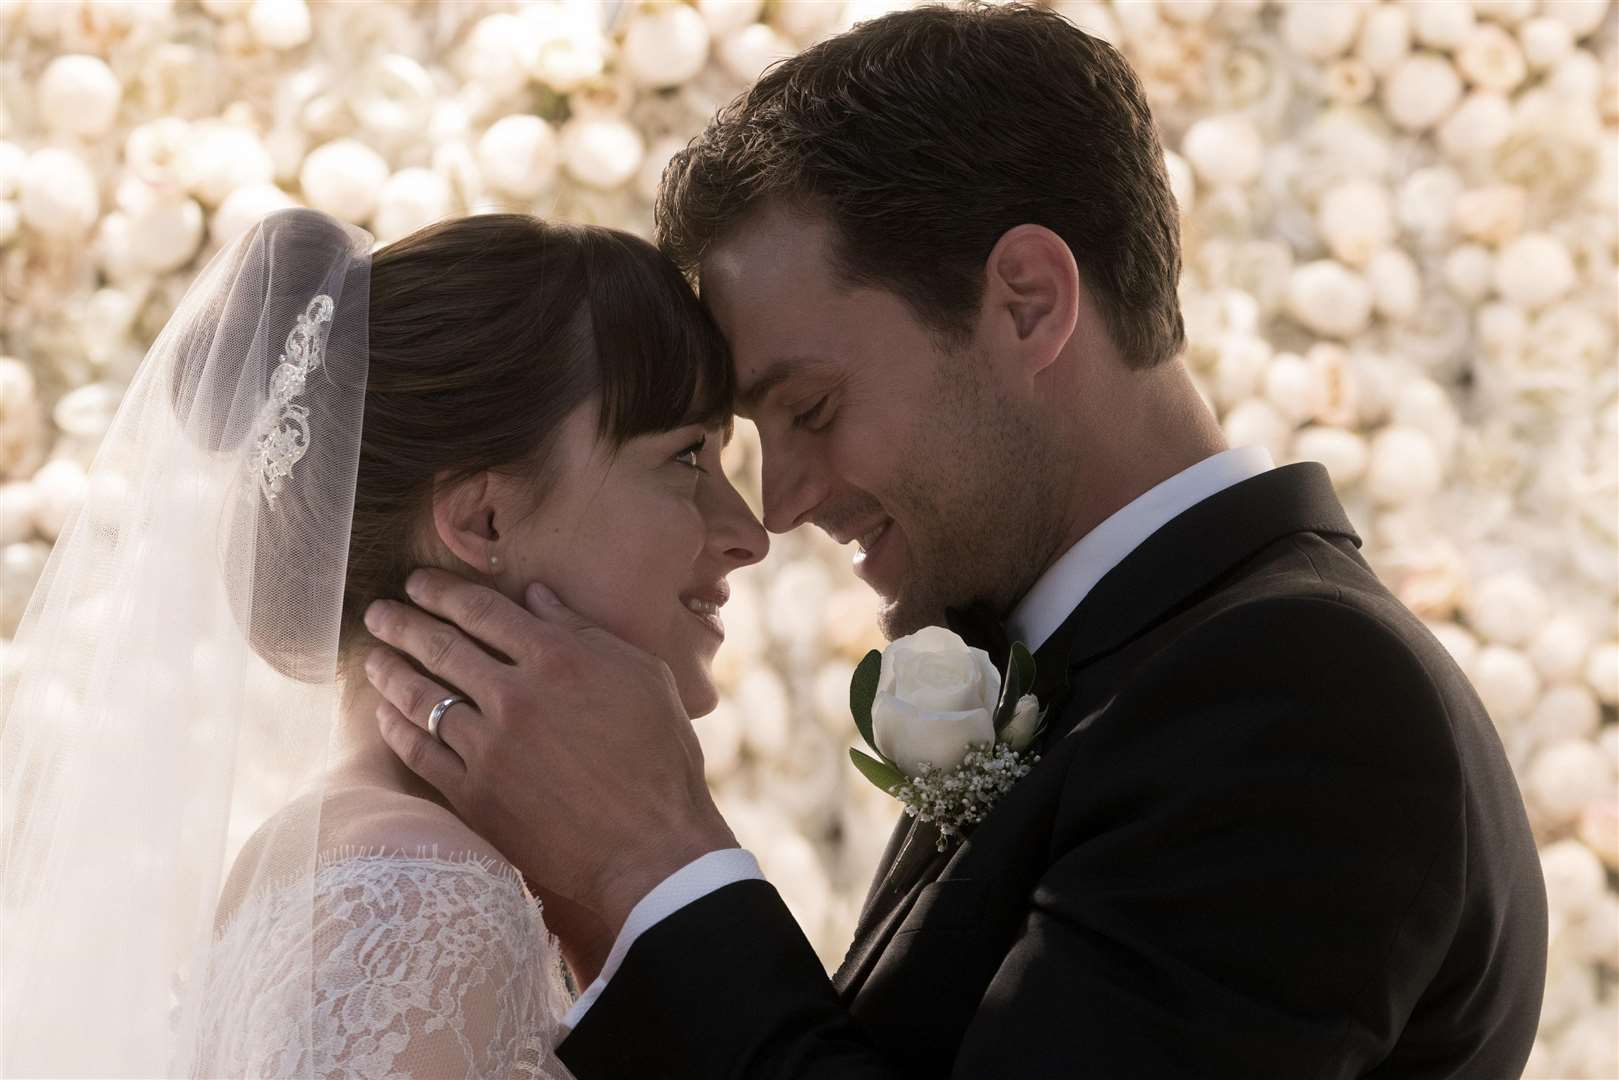 Undated film still handout from Fifty Shades Freed. Pictured: Dakota Johnson as Anastasia Steele and Jamie Dornan as Christian Grey. See PA Feature SHOWBIZ Film Digest. Picture credit should read: PA Photo/Universal Pictures/Doane Gregory. WARNING: This picture must only be used to accompany PA Feature SHOWBIZ Film Digest.. (2560619)